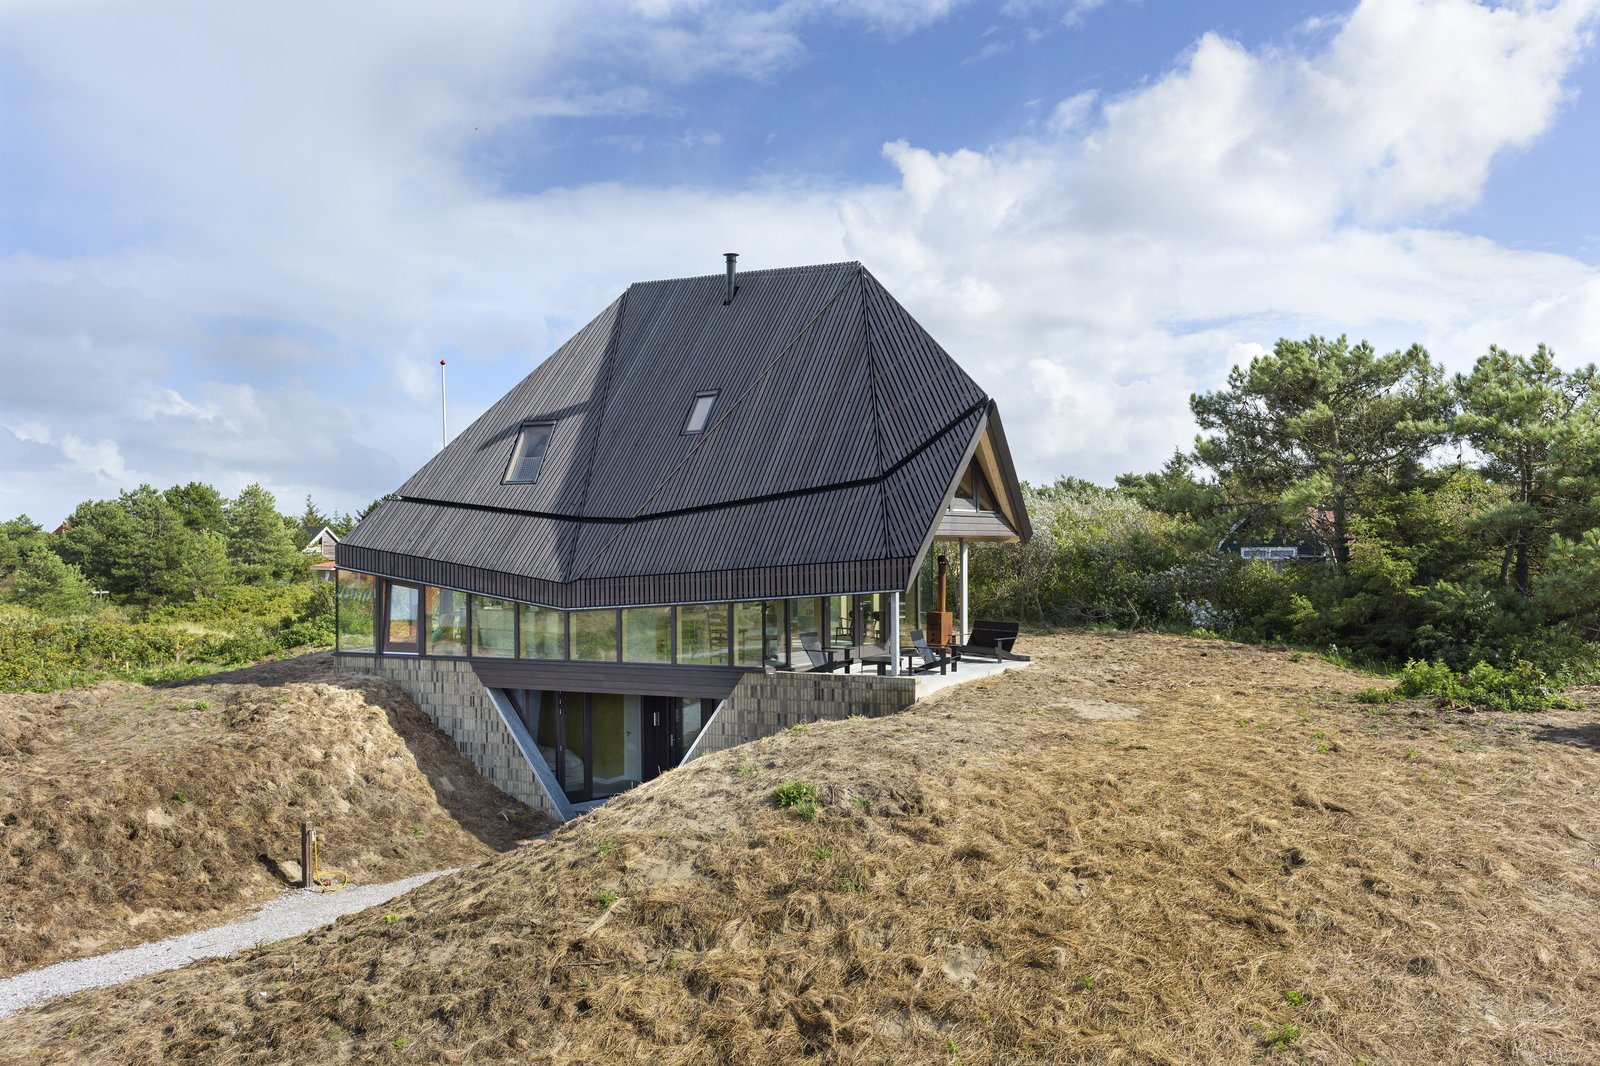 Exterior, House Building Type, and Glass Siding Material Located on the top of a sand dune, the Vlieland house is dominated by a high roof that was inspired by the De Waard Albatross tent, a popular pyramidal camping tent designed by Dutch tent makers De Waard in 1961. The ground floor—where the communal areas like the living lounge, kitchen, and covered terrace are located—are fitted on all sides with glass to maximize views.  Photos from 50 Jaw-Dropping Glass Houses That Shatter Expectations